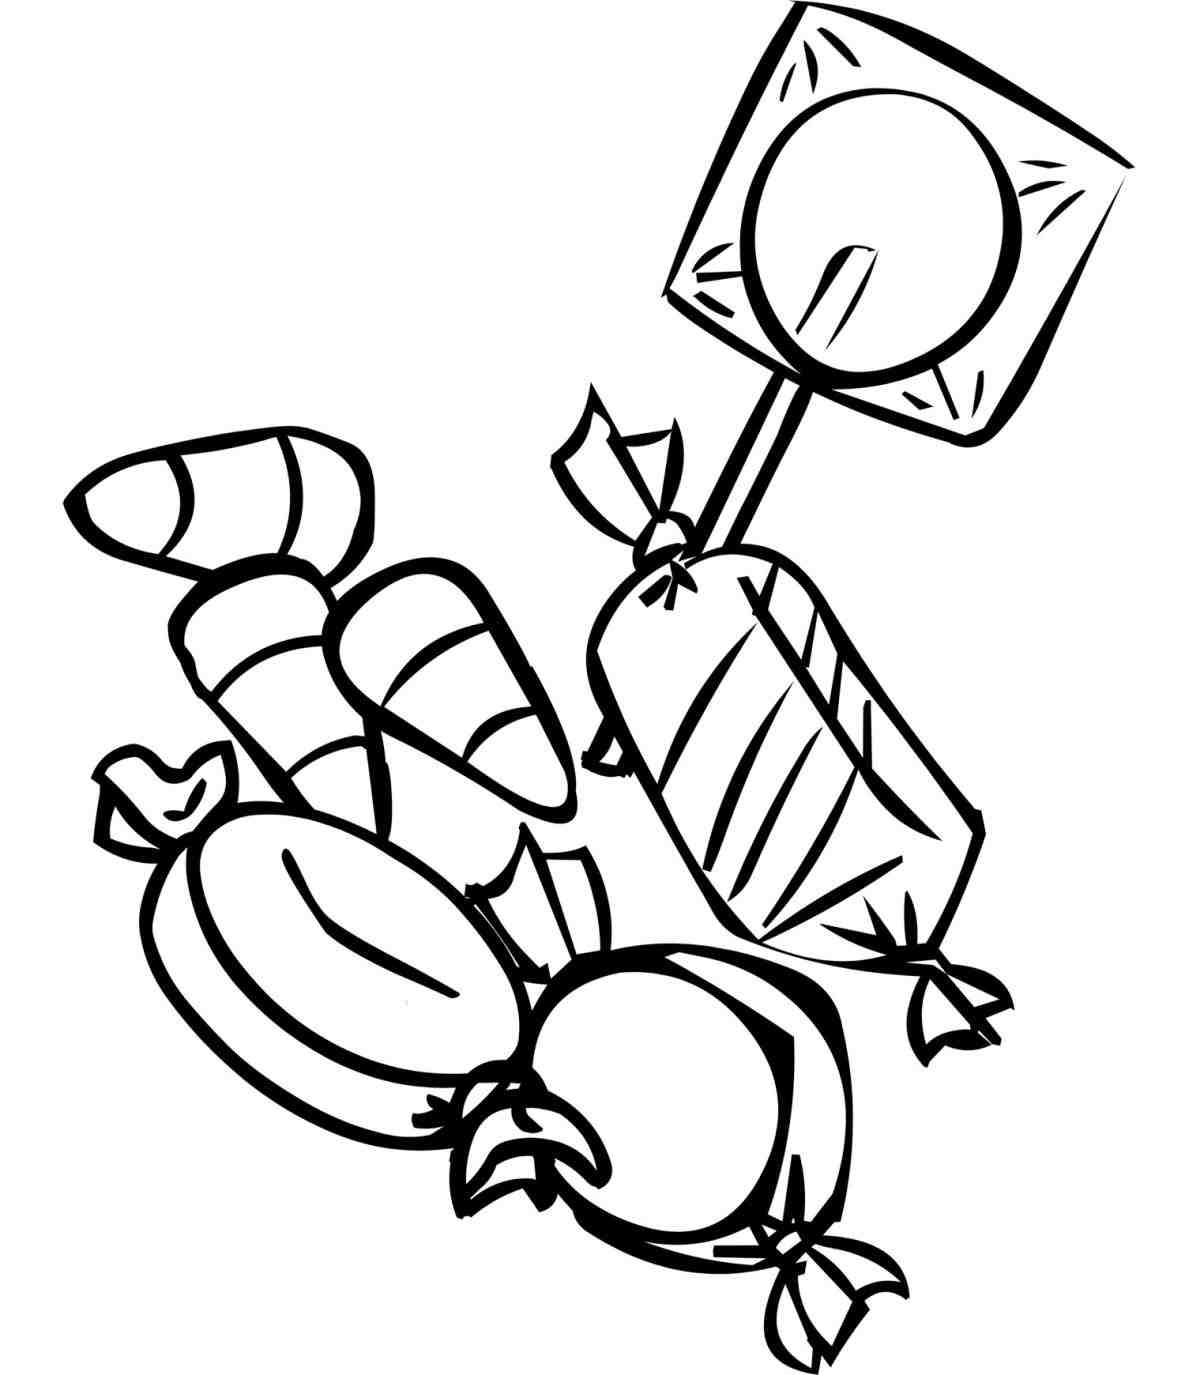 1185x1375 Christmas Candy Canes Coloring Pages Cheminee.website